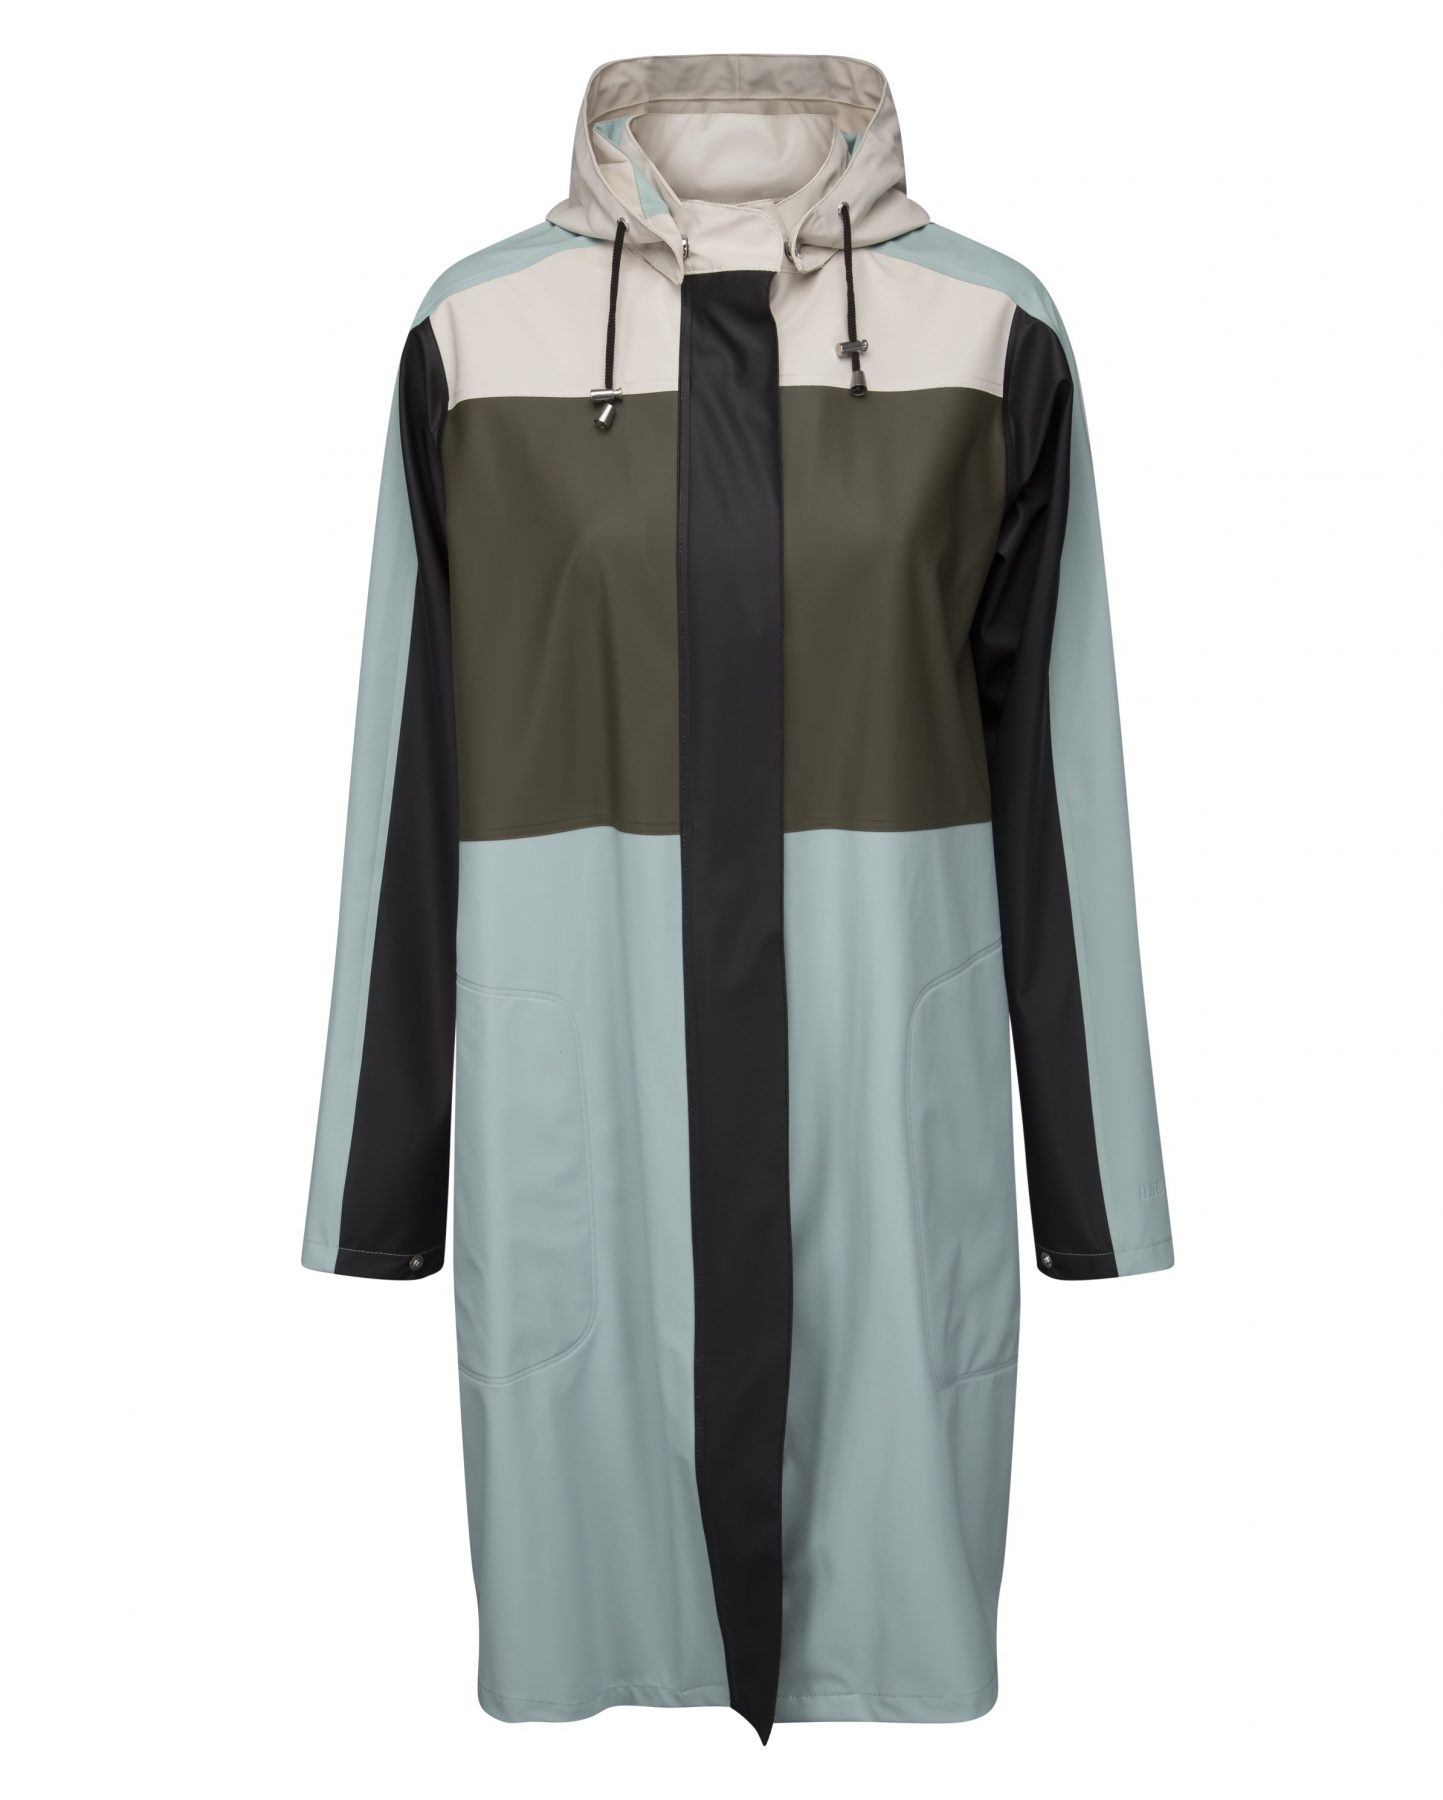 fbcf5775debe Ilse Jacobsen Rain84 Light True Rain Raincoat – Colour Blocks